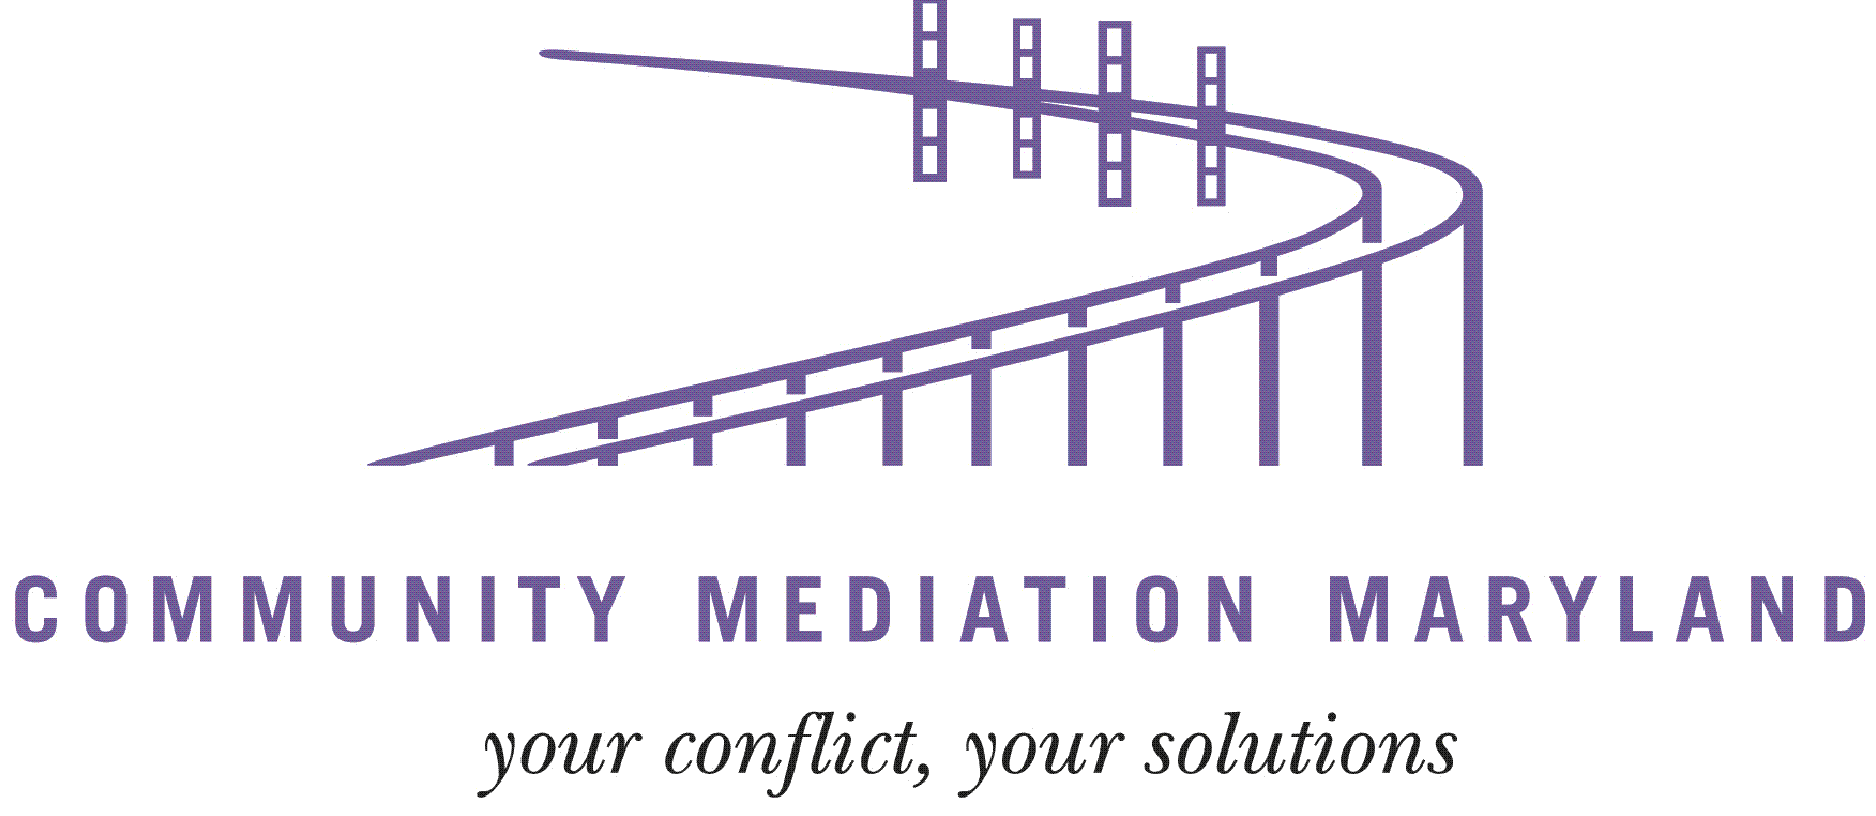 community Mediation Maryland Logo